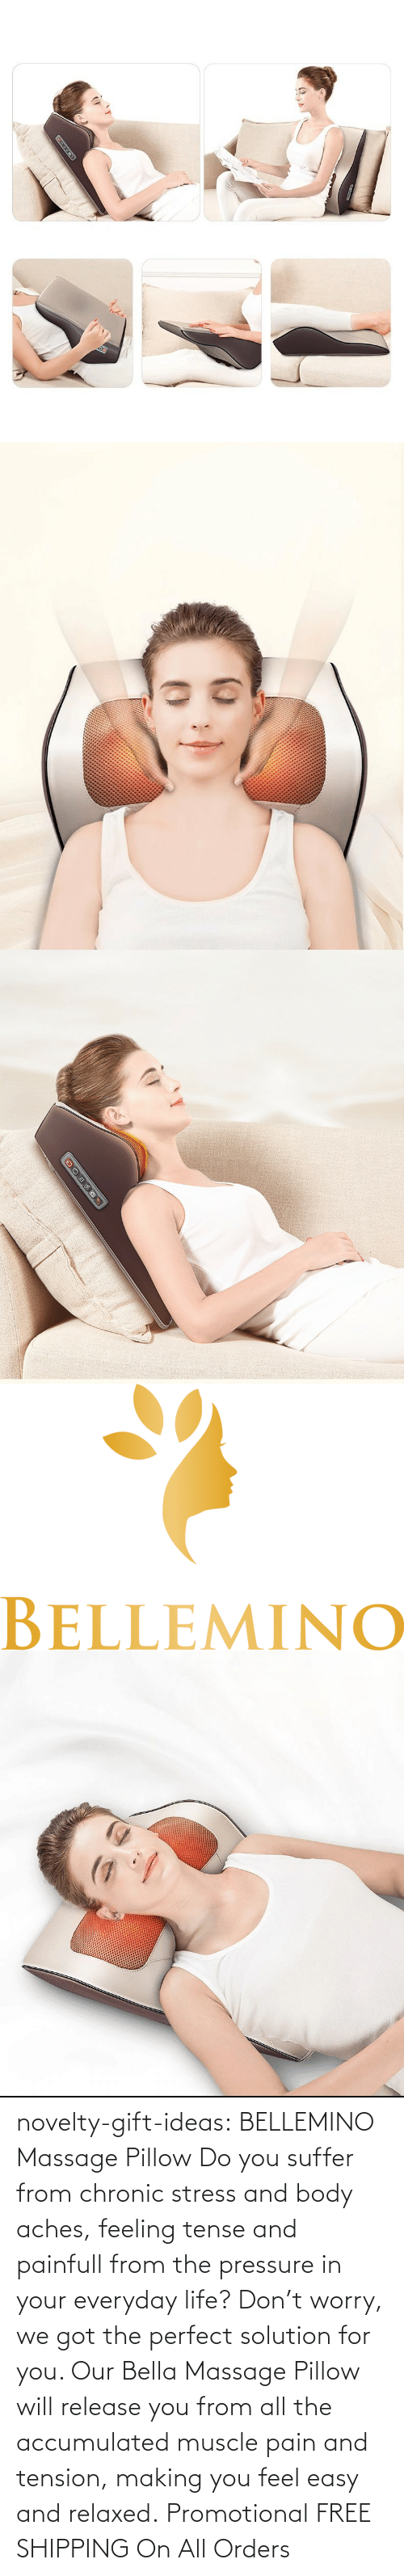 Life, Massage, and Pressure: novelty-gift-ideas:   BELLEMINO Massage Pillow     Do you suffer from chronic stress and body aches, feeling tense and painfull from the pressure in your everyday life? Don't worry, we got the perfect solution for you. Our Bella Massage Pillow will release you from all the accumulated muscle pain and tension, making you feel easy and relaxed.     Promotional FREE SHIPPING On All Orders